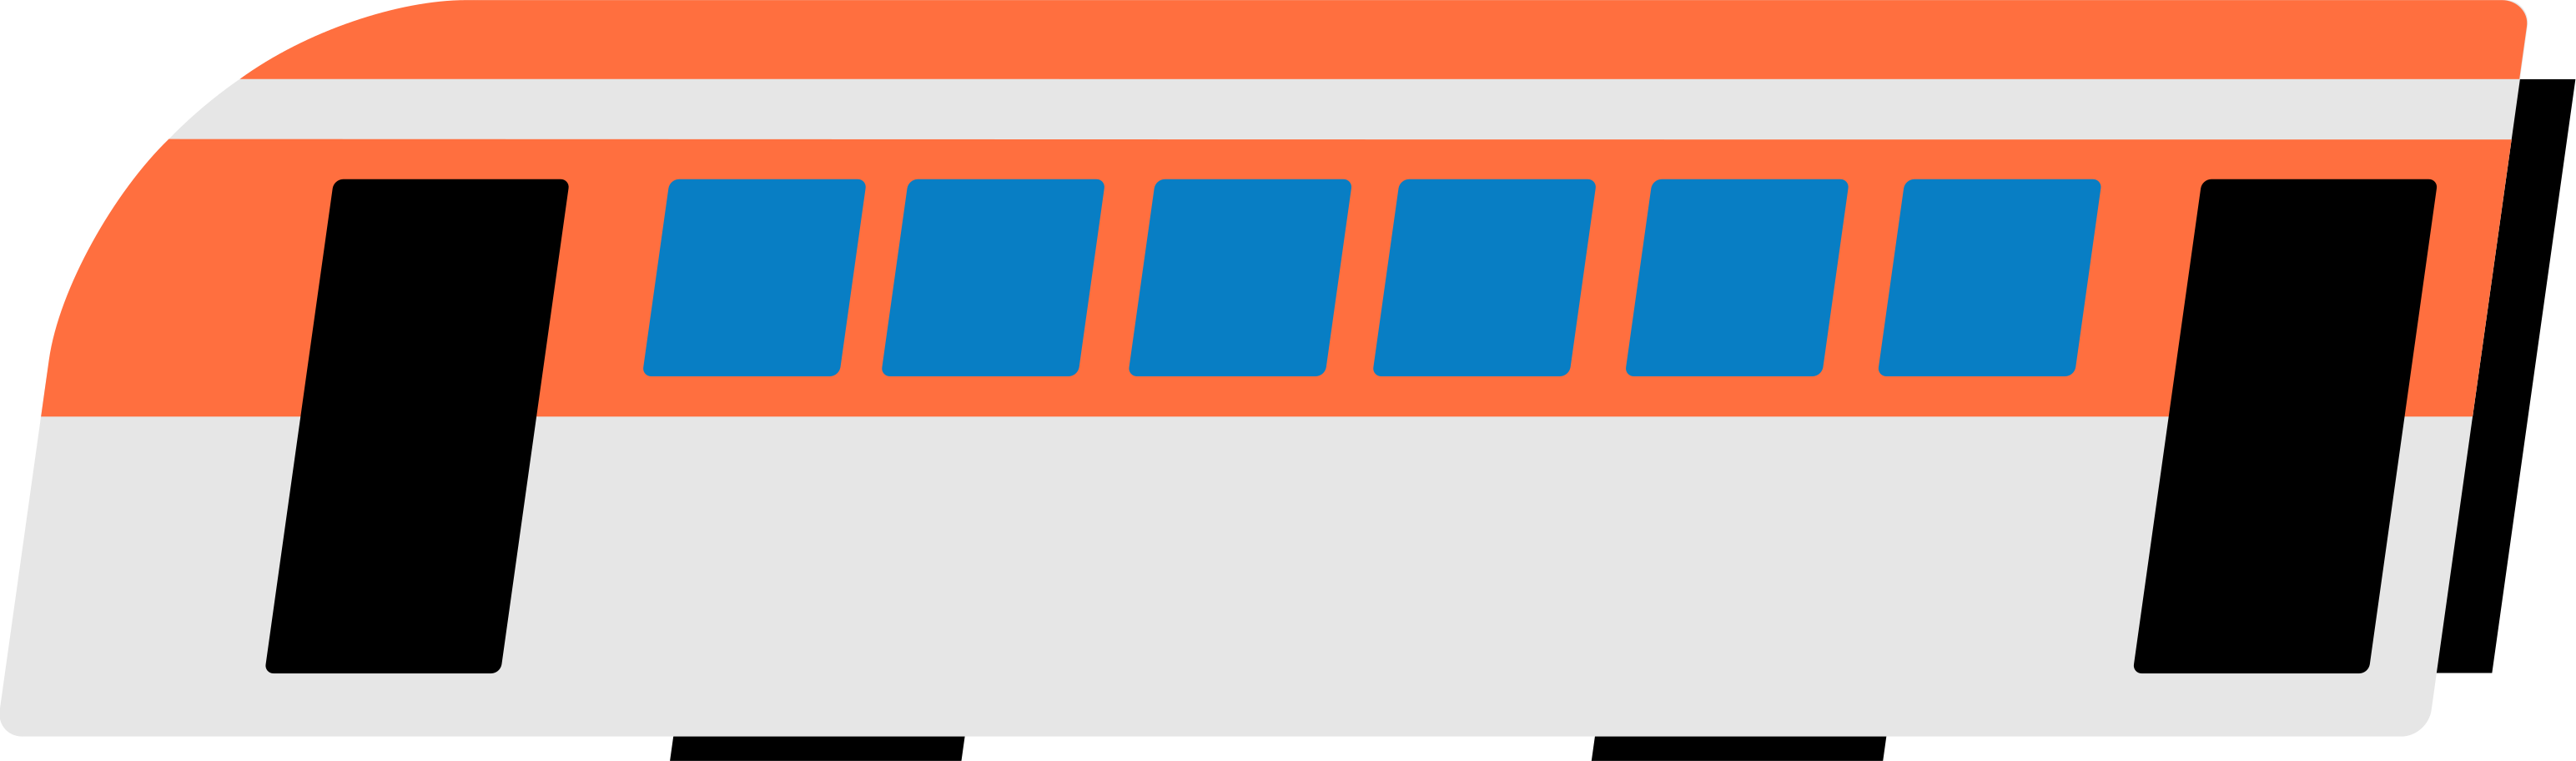 train Clipart illustration in PNG, SVG